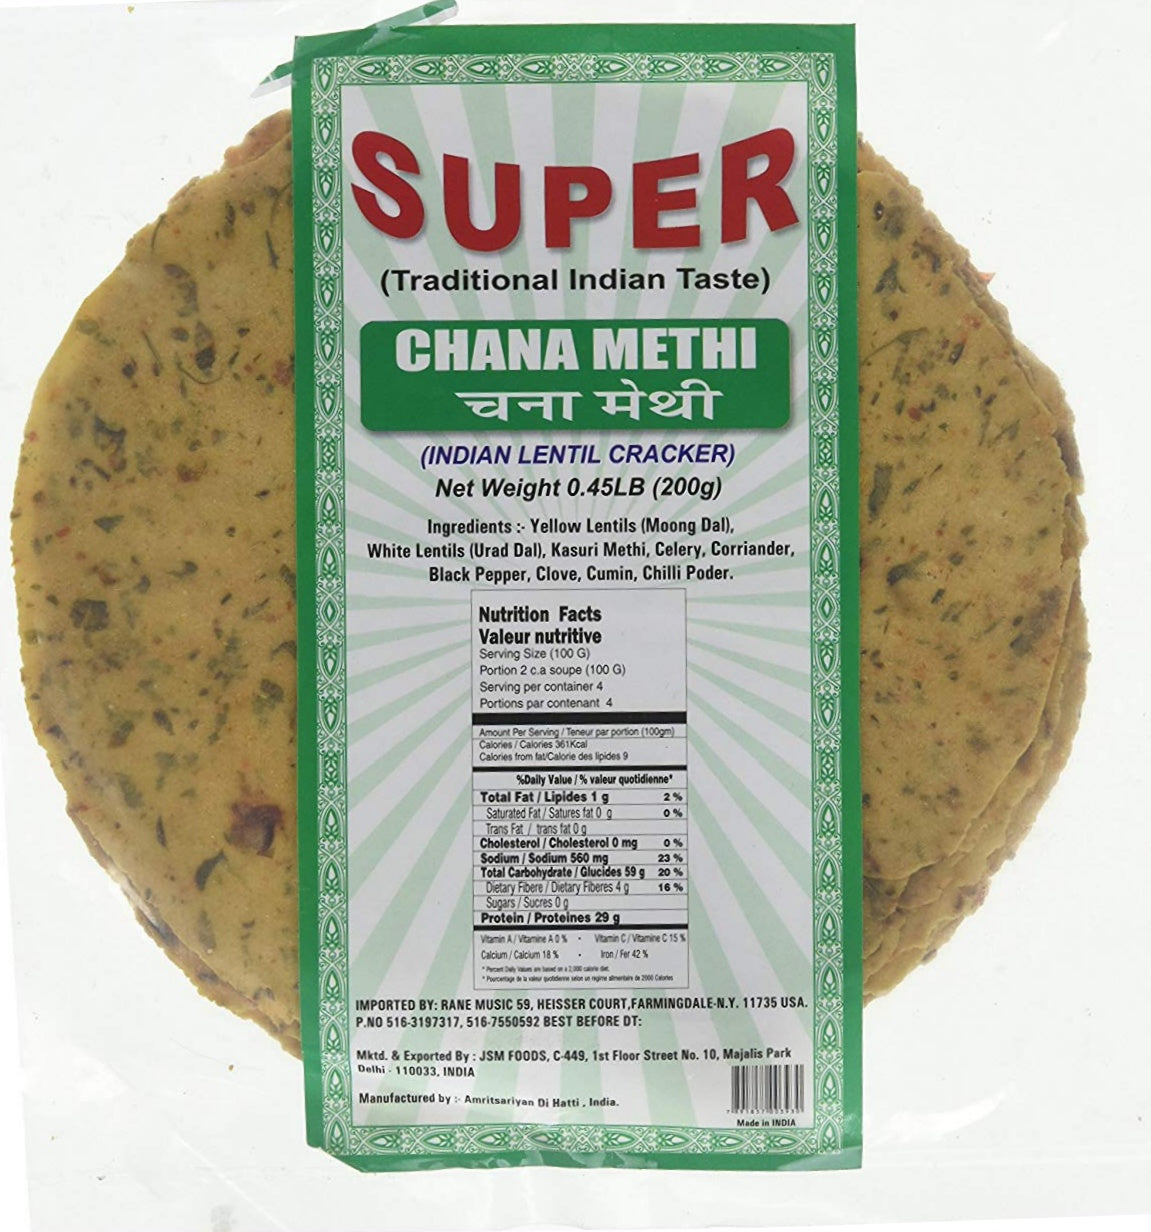 Chana Methi